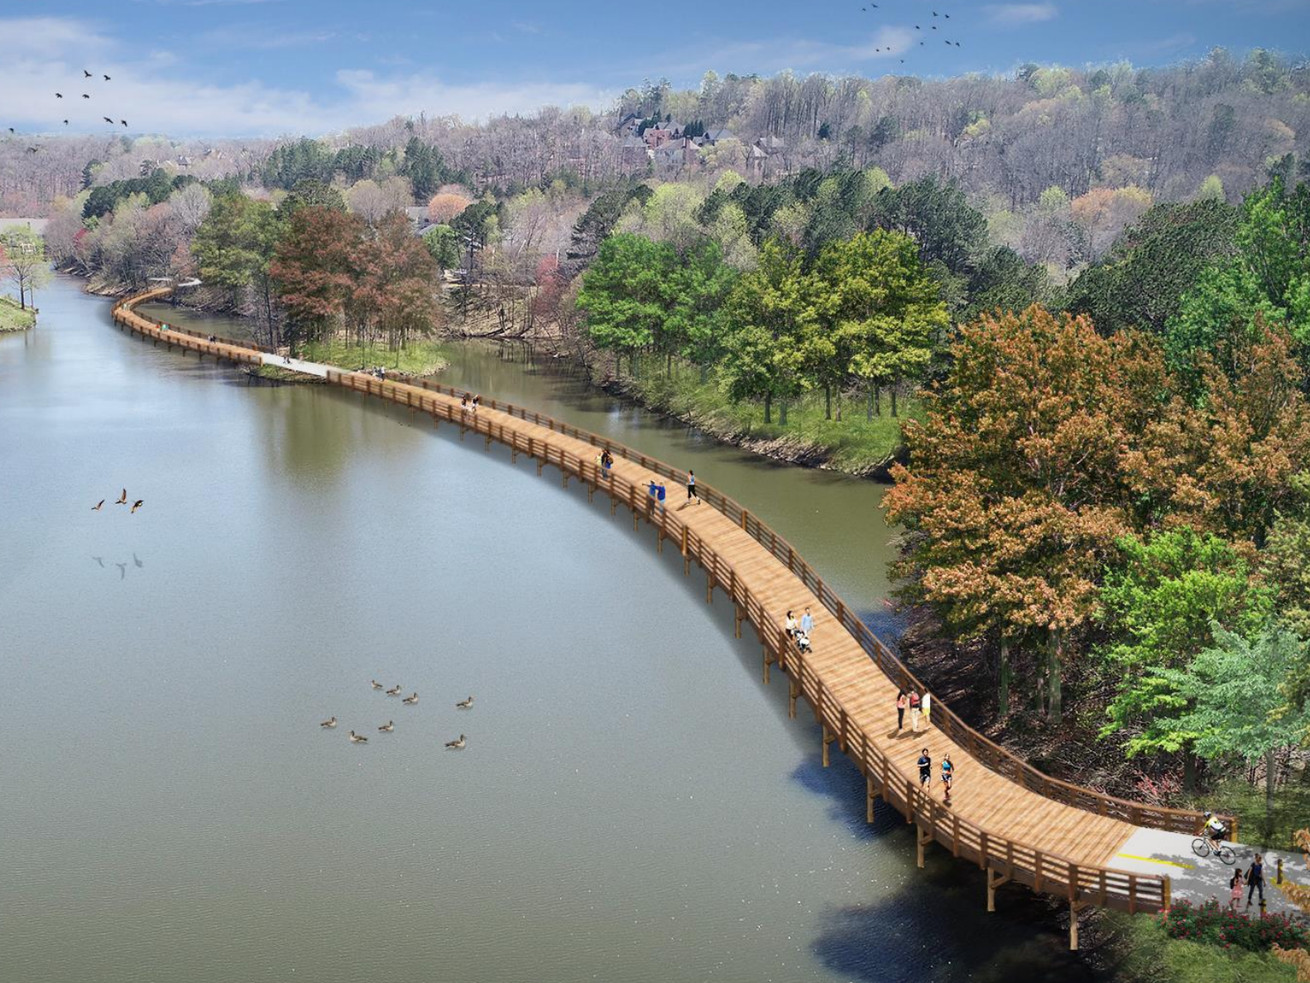 A rendering of a wooden footbridge snaking over a lake.